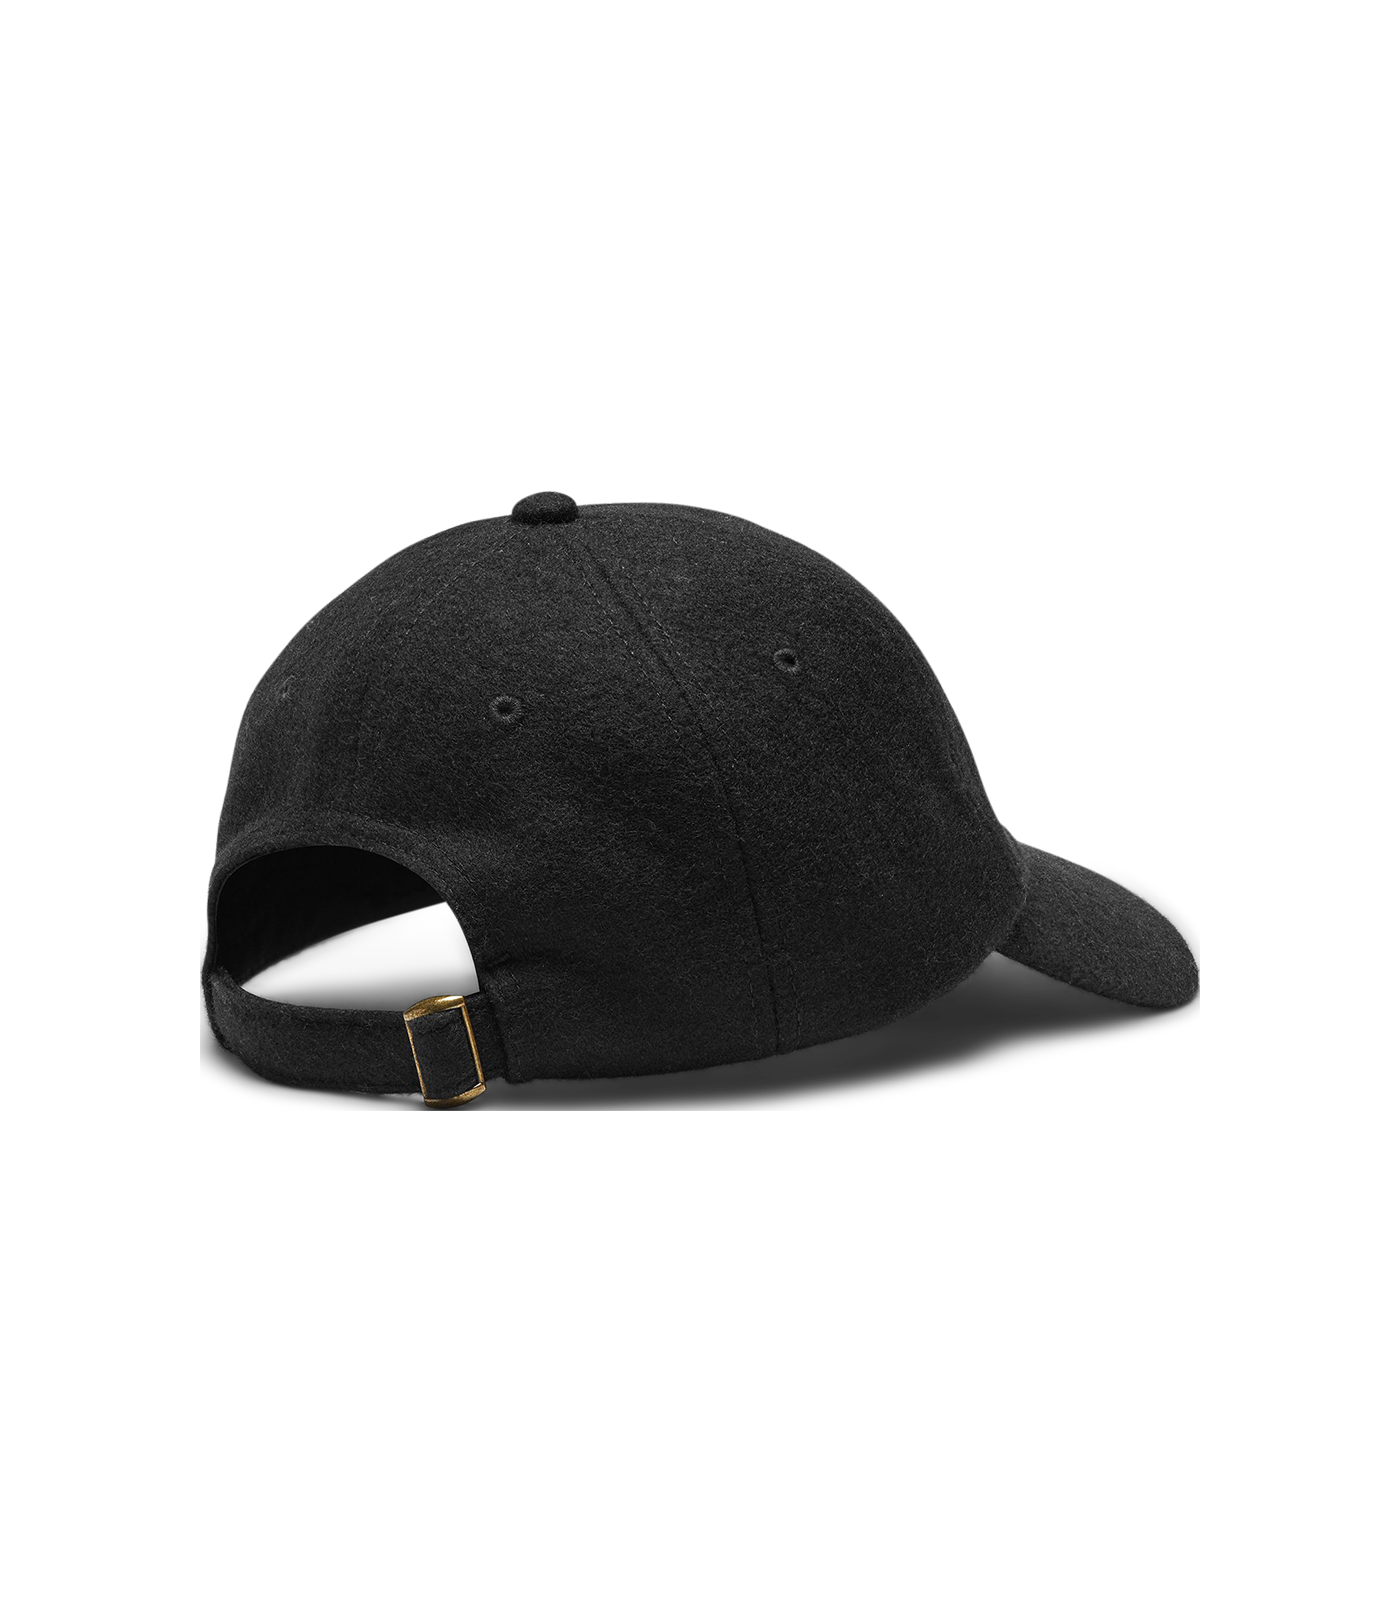 GREETINGS GRAPHIC CAP - BLACK